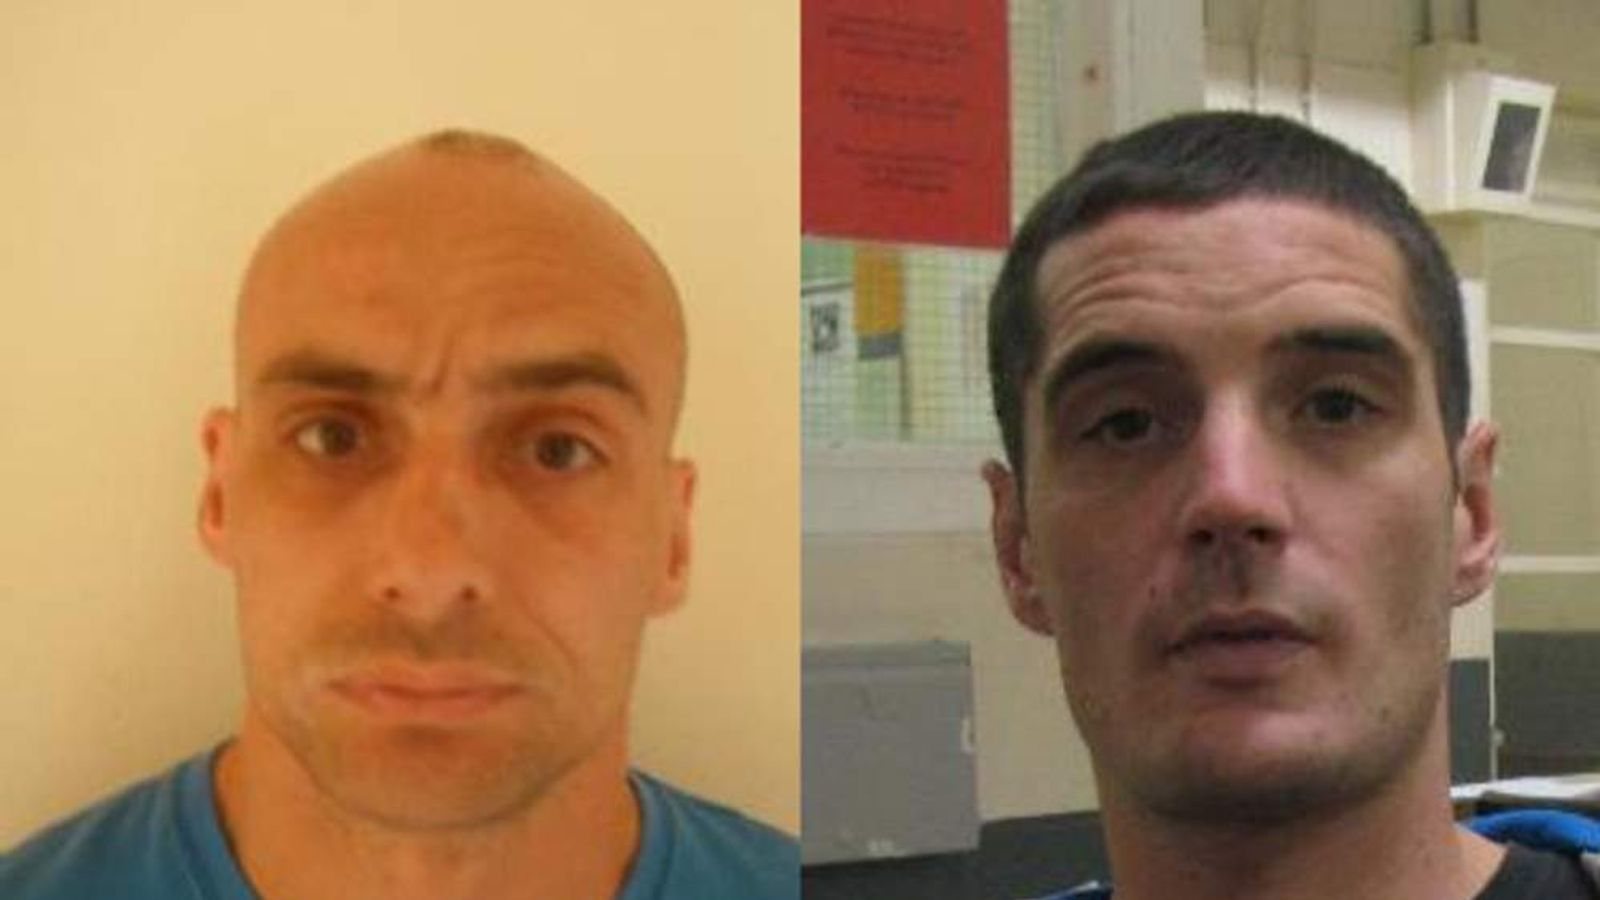 On-the-run prisoners Anthony Peloe and John Arnold